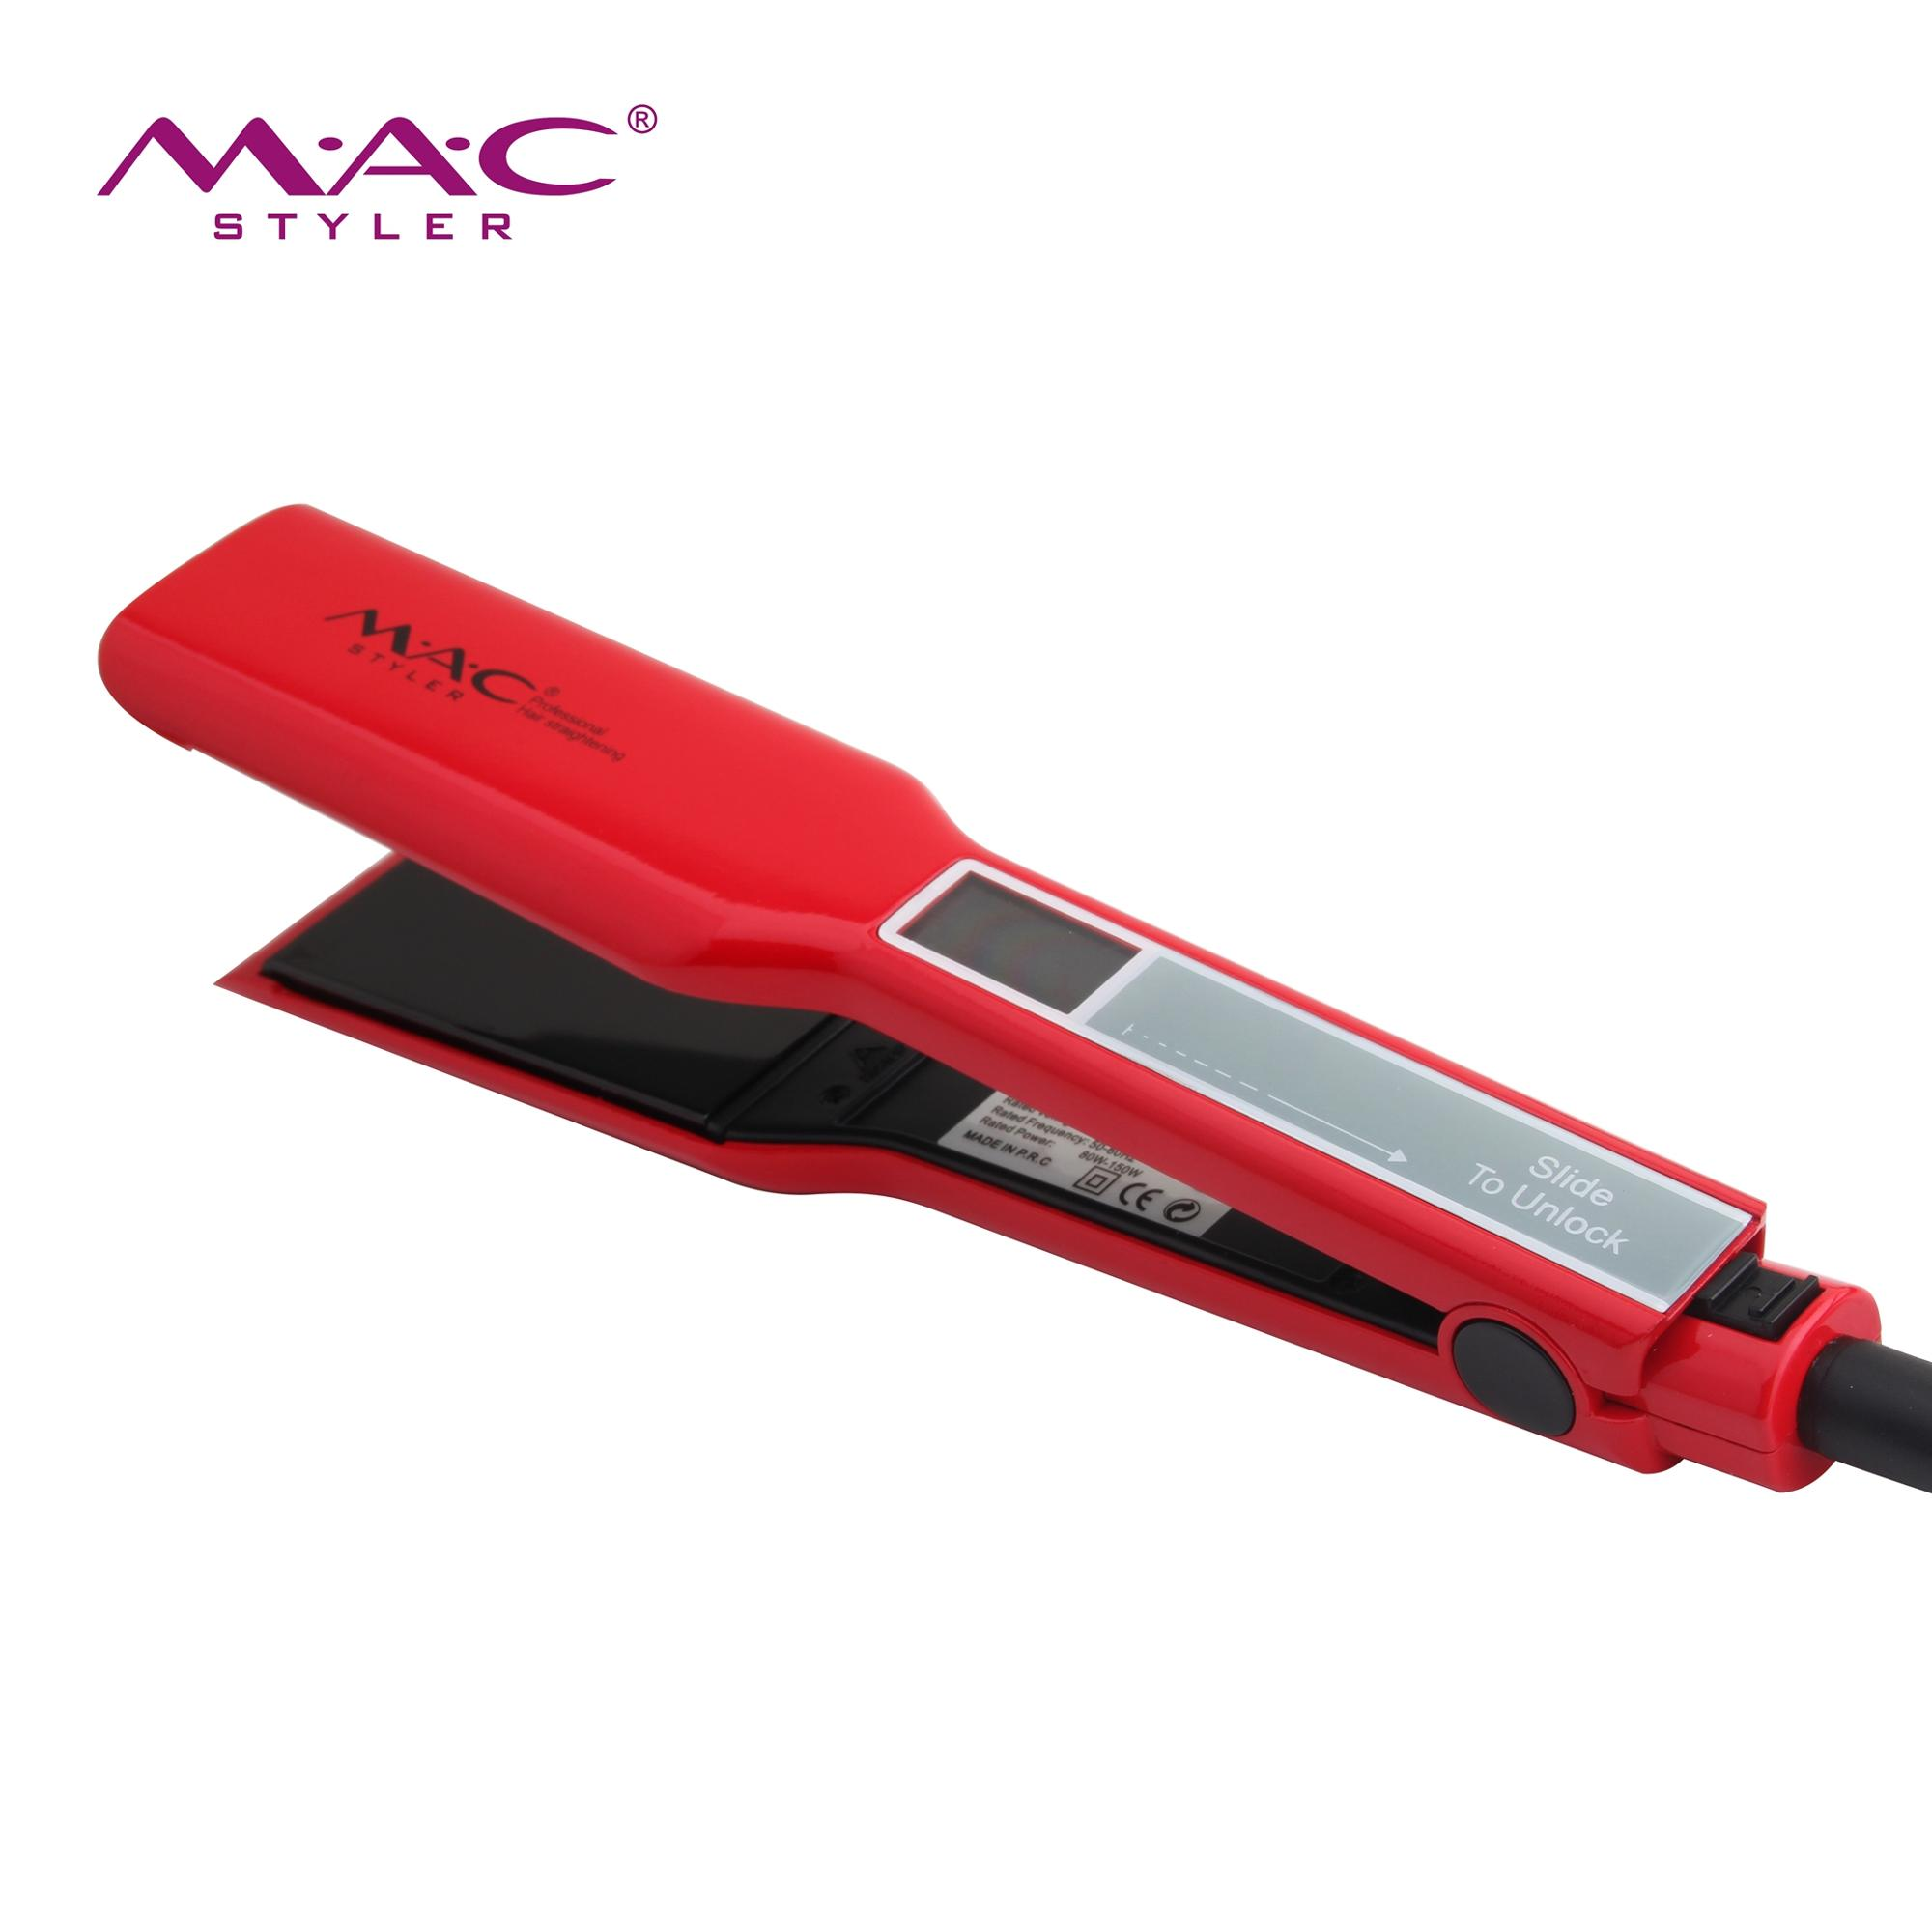 the innovative control panel with touch interface alows you to adjust all control settings custom flat iron digital